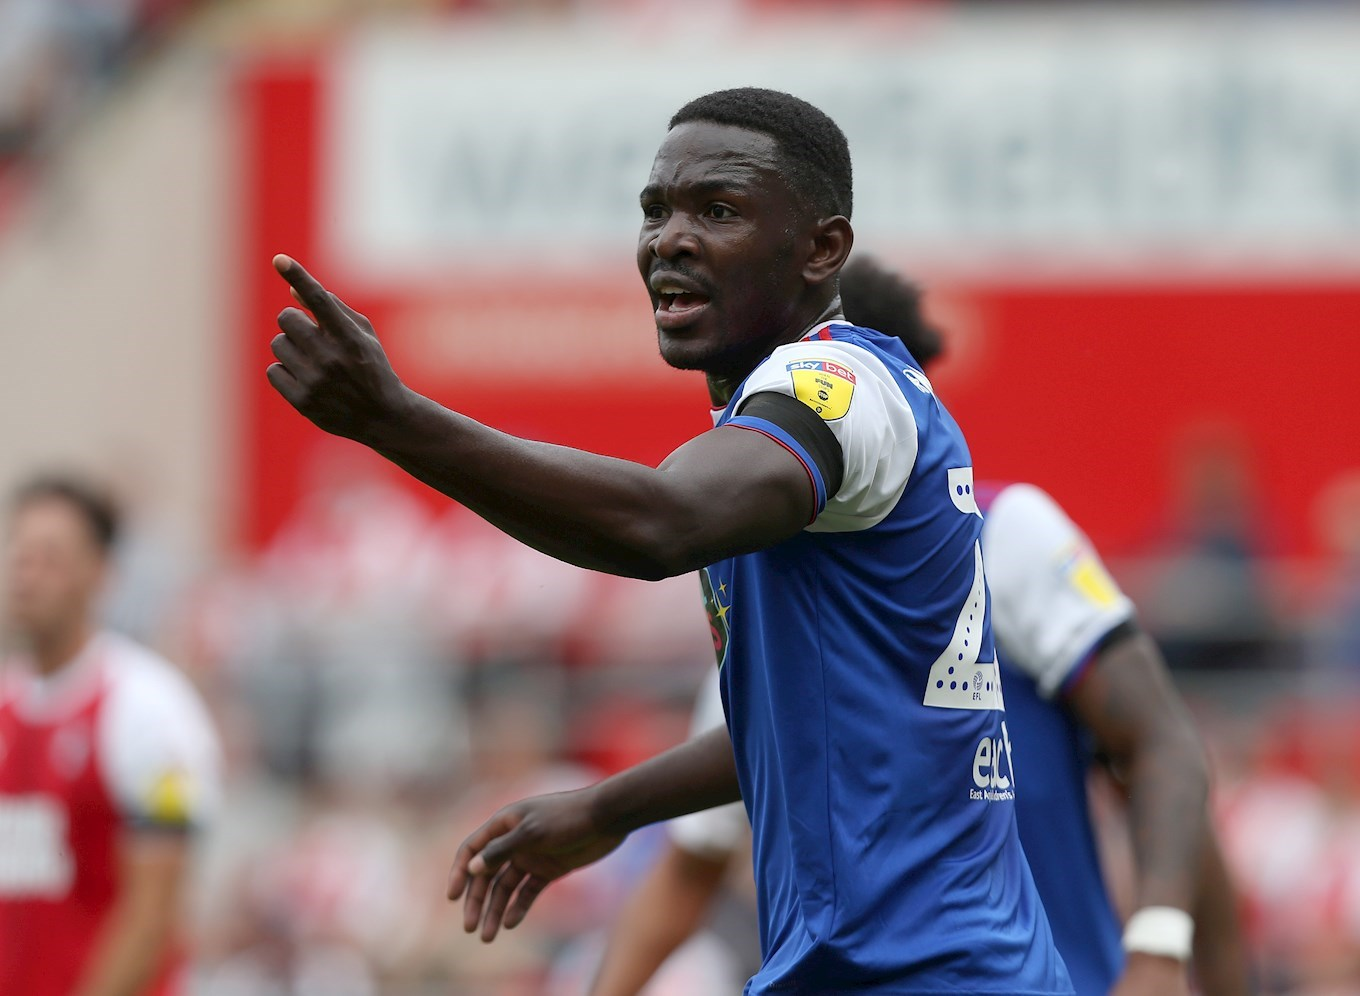 Nsiala signs on loan from Ipswich Town